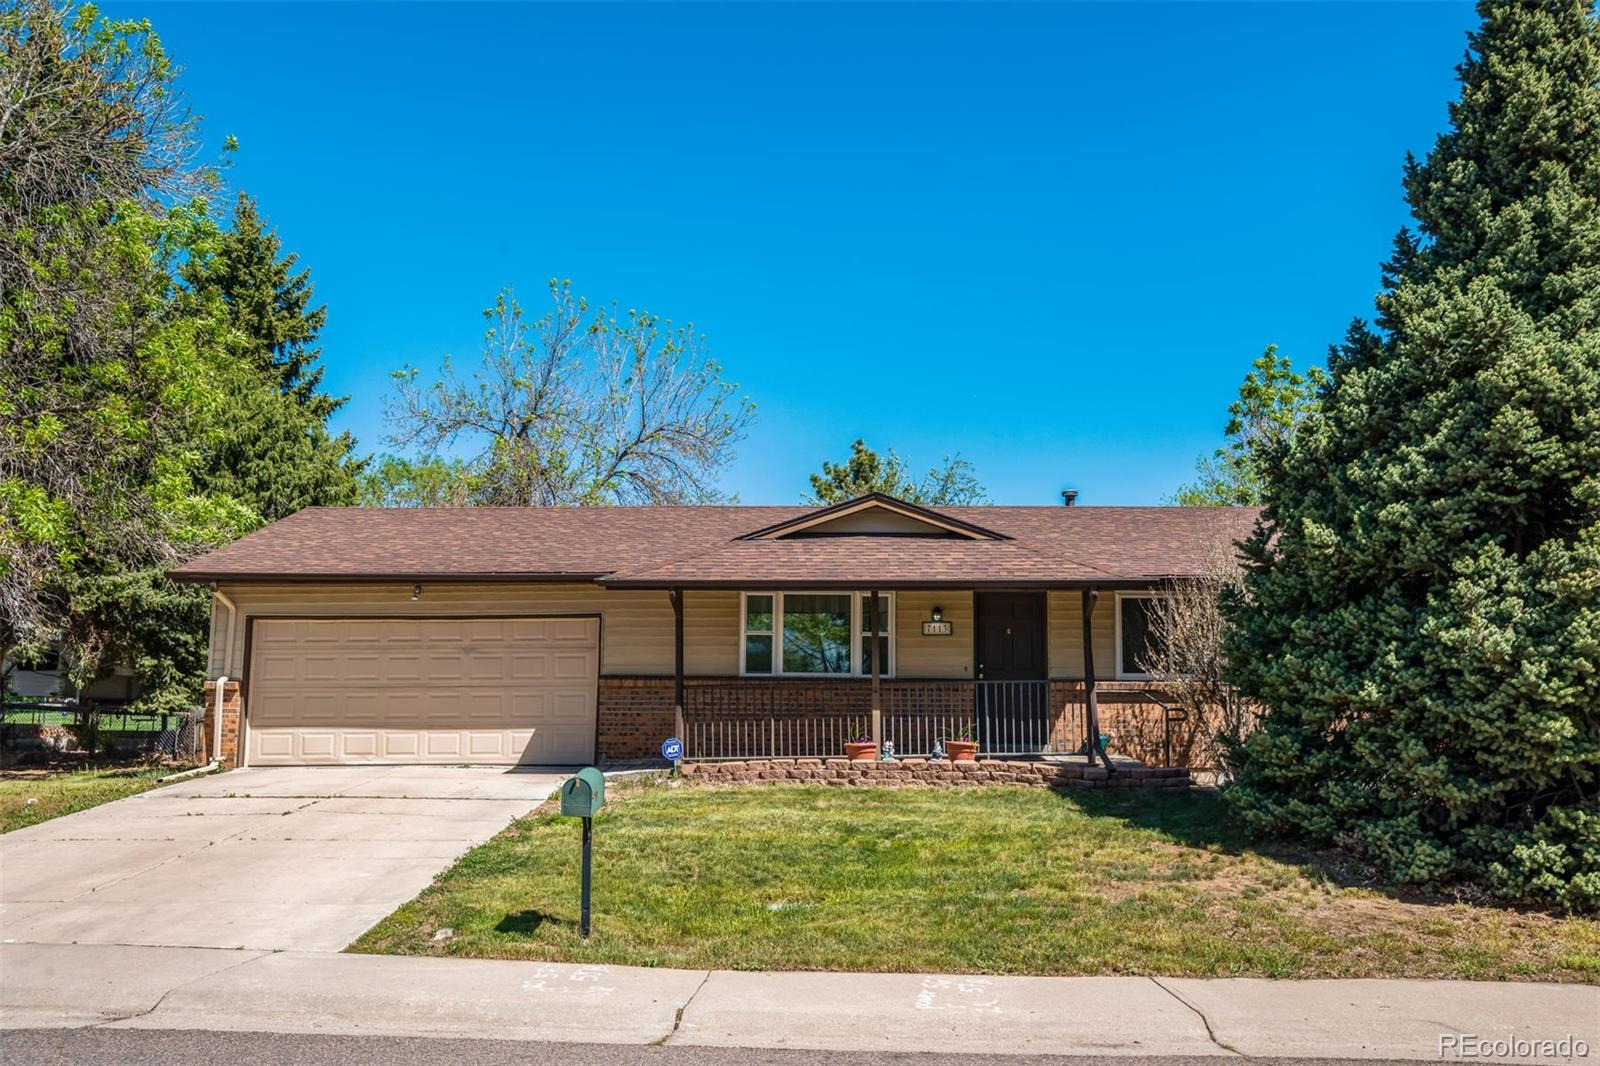 7113 W Hinsdale Drive Property Photo - Littleton, CO real estate listing